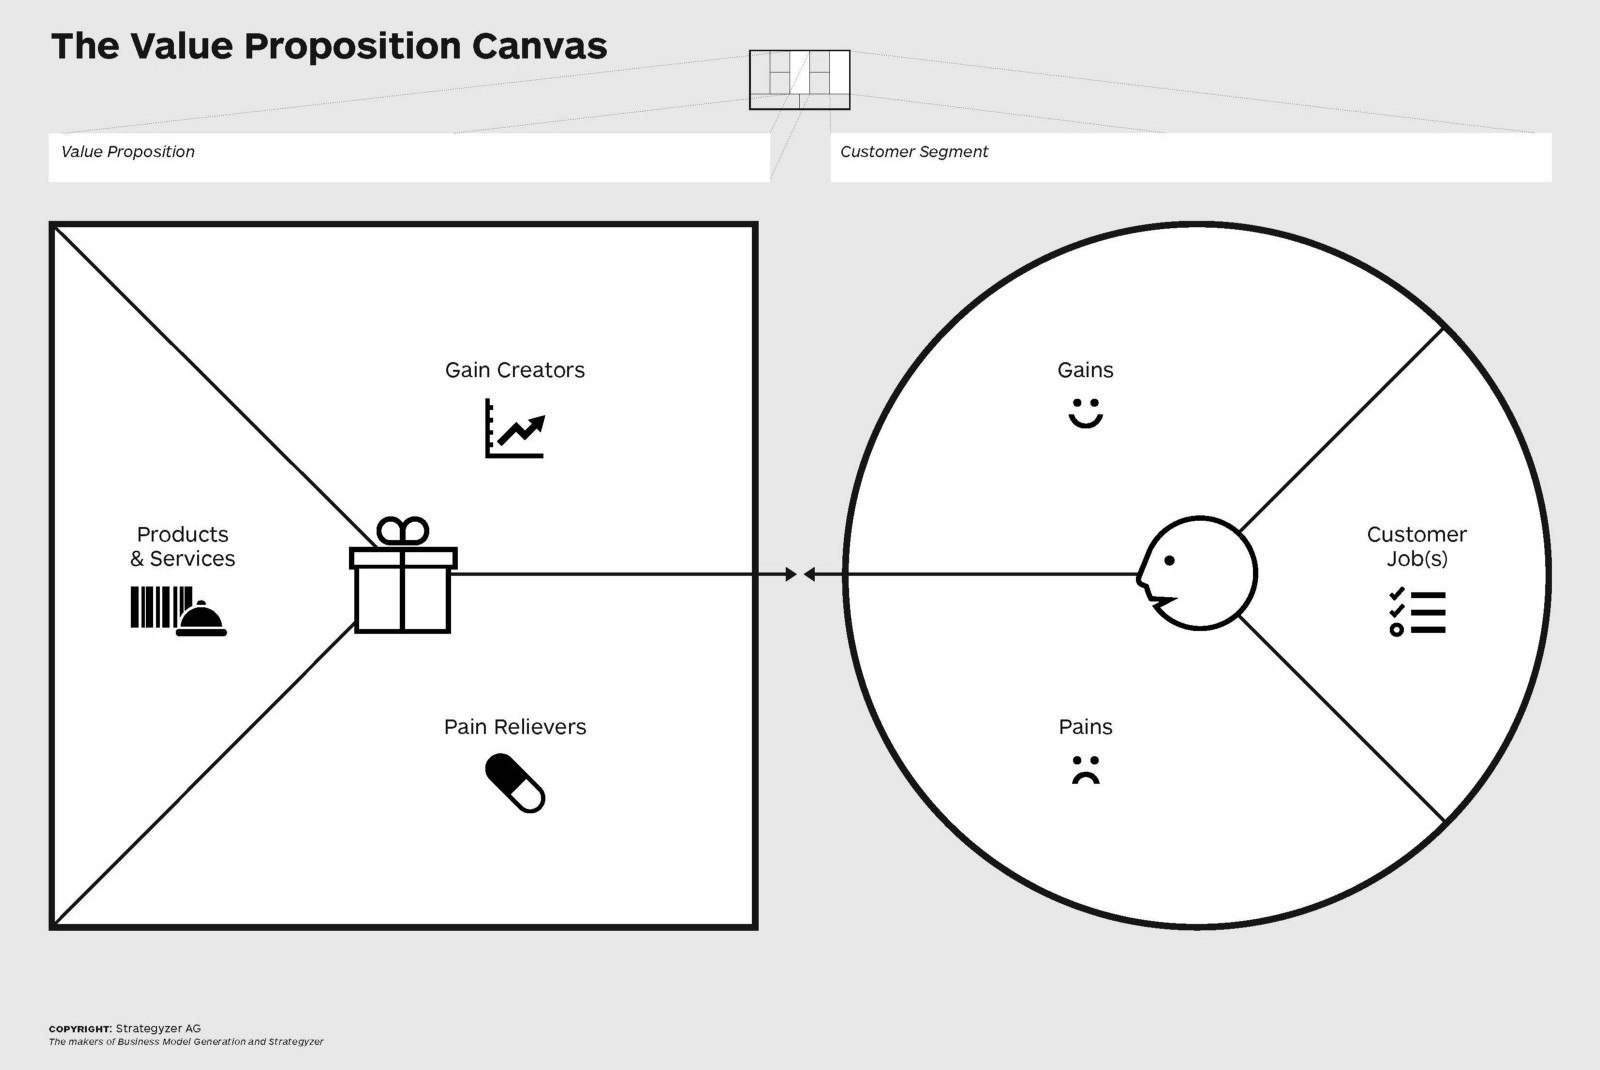 value-proposition-canvas-template-high-resolution-strategyzer